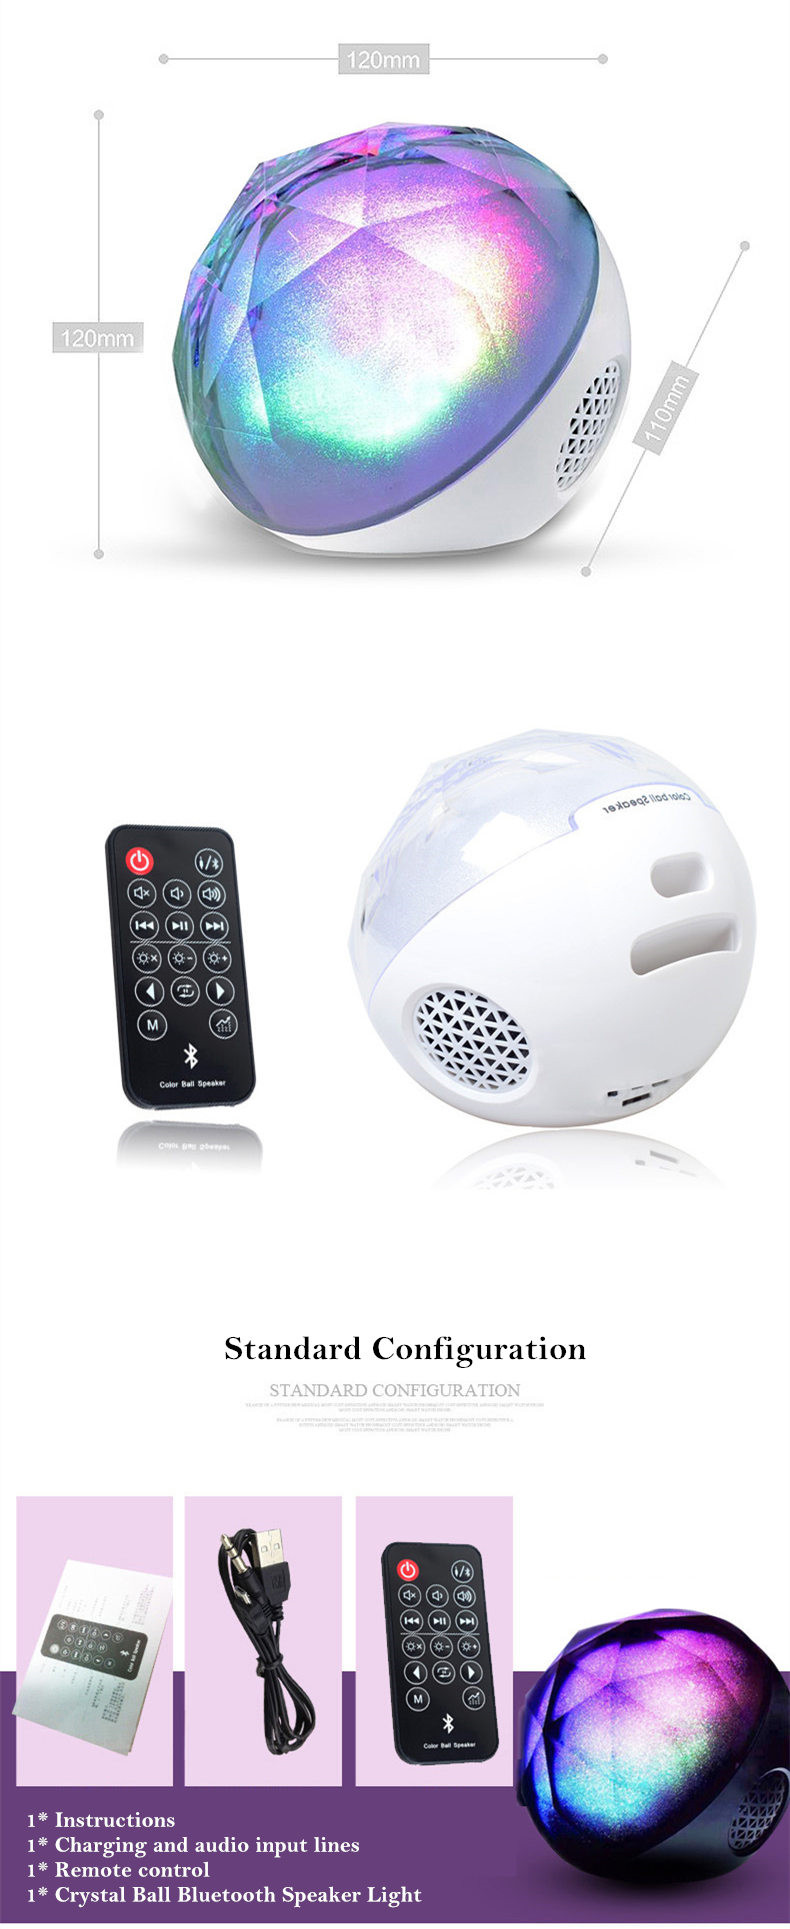 Portable Bluetooth speaker Portable Wireless Loudspeaker LED Light Crystal Ball Bluetooth Speaker Night Light USB MP3 Player06